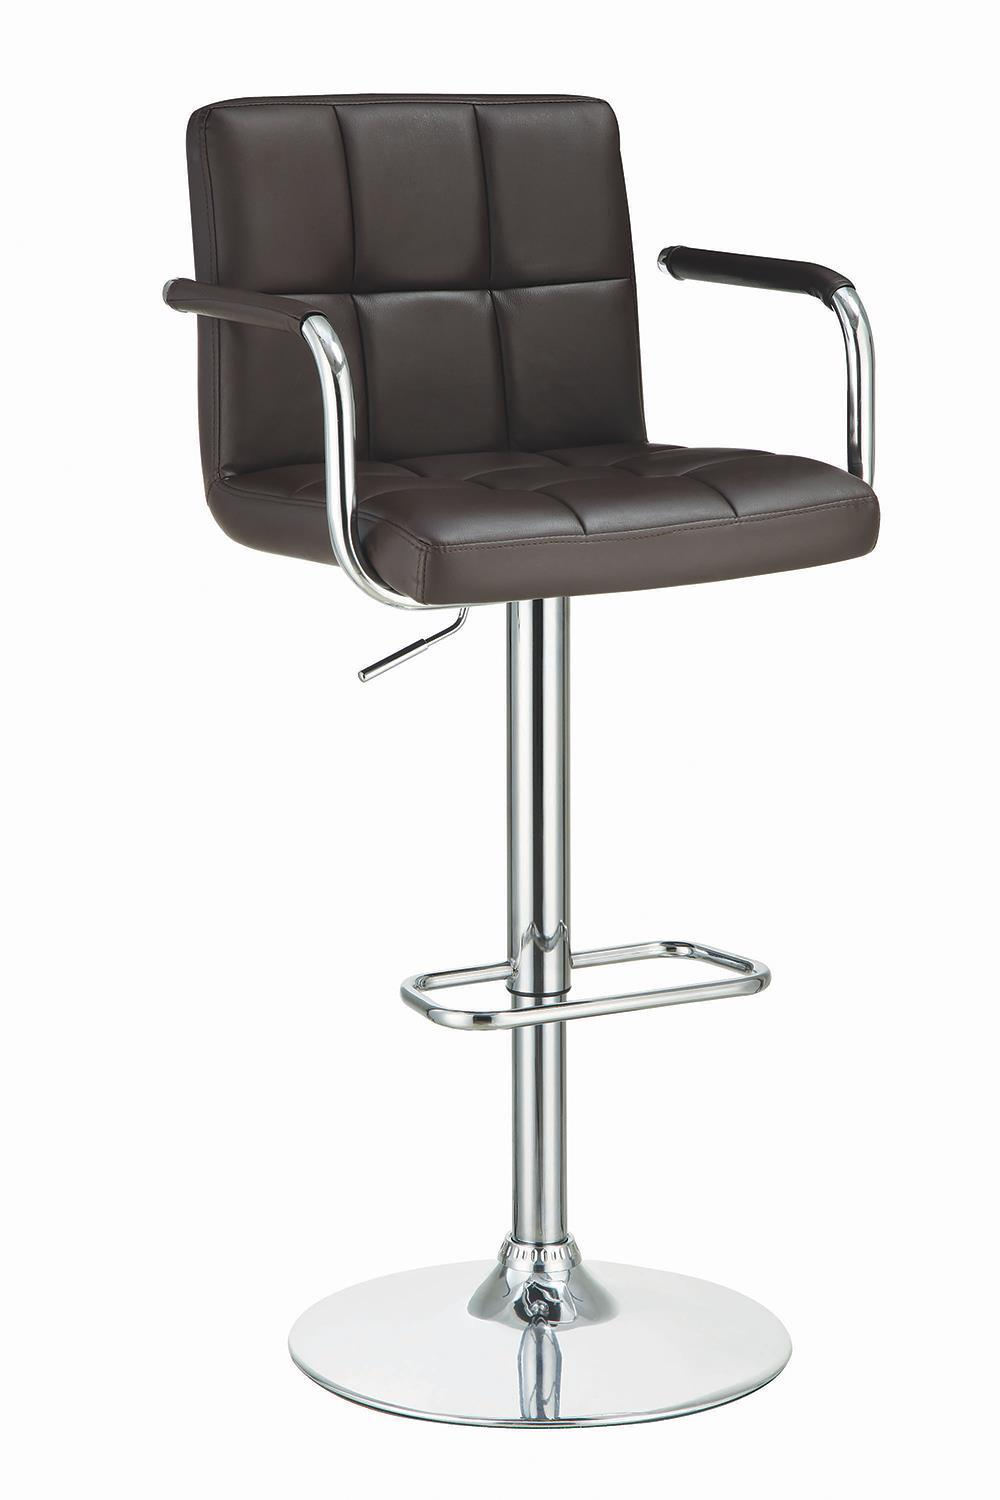 Rec Room/bar Stools: Height Adjustable - Brown - Adjustable Height Bar Stool Brown And Chrome